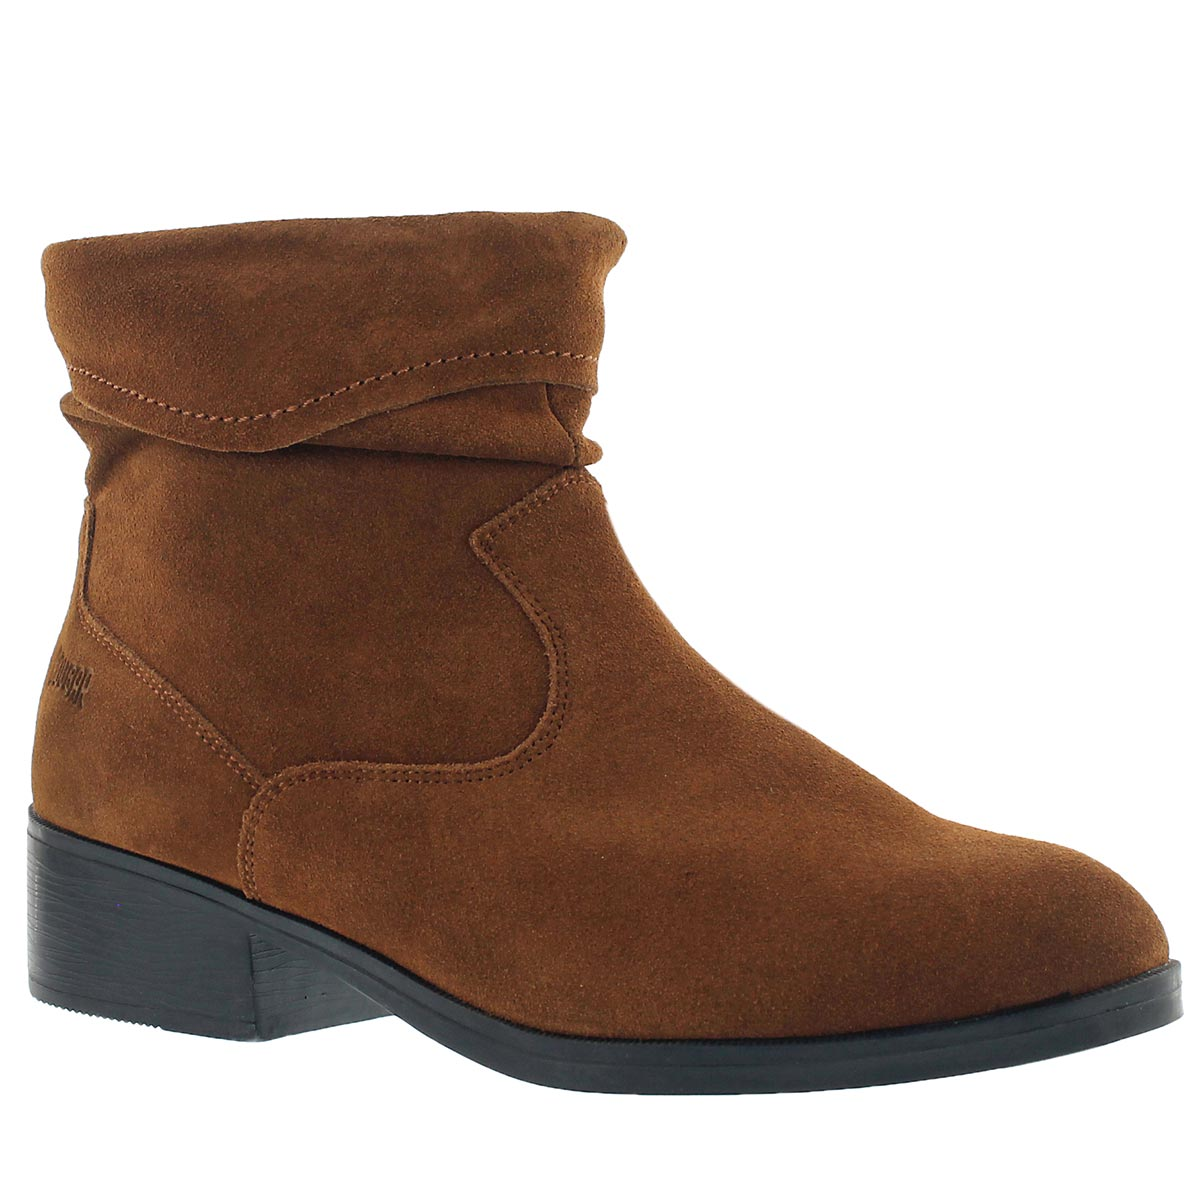 Lds Calinda chestnut wtpf ankle boot